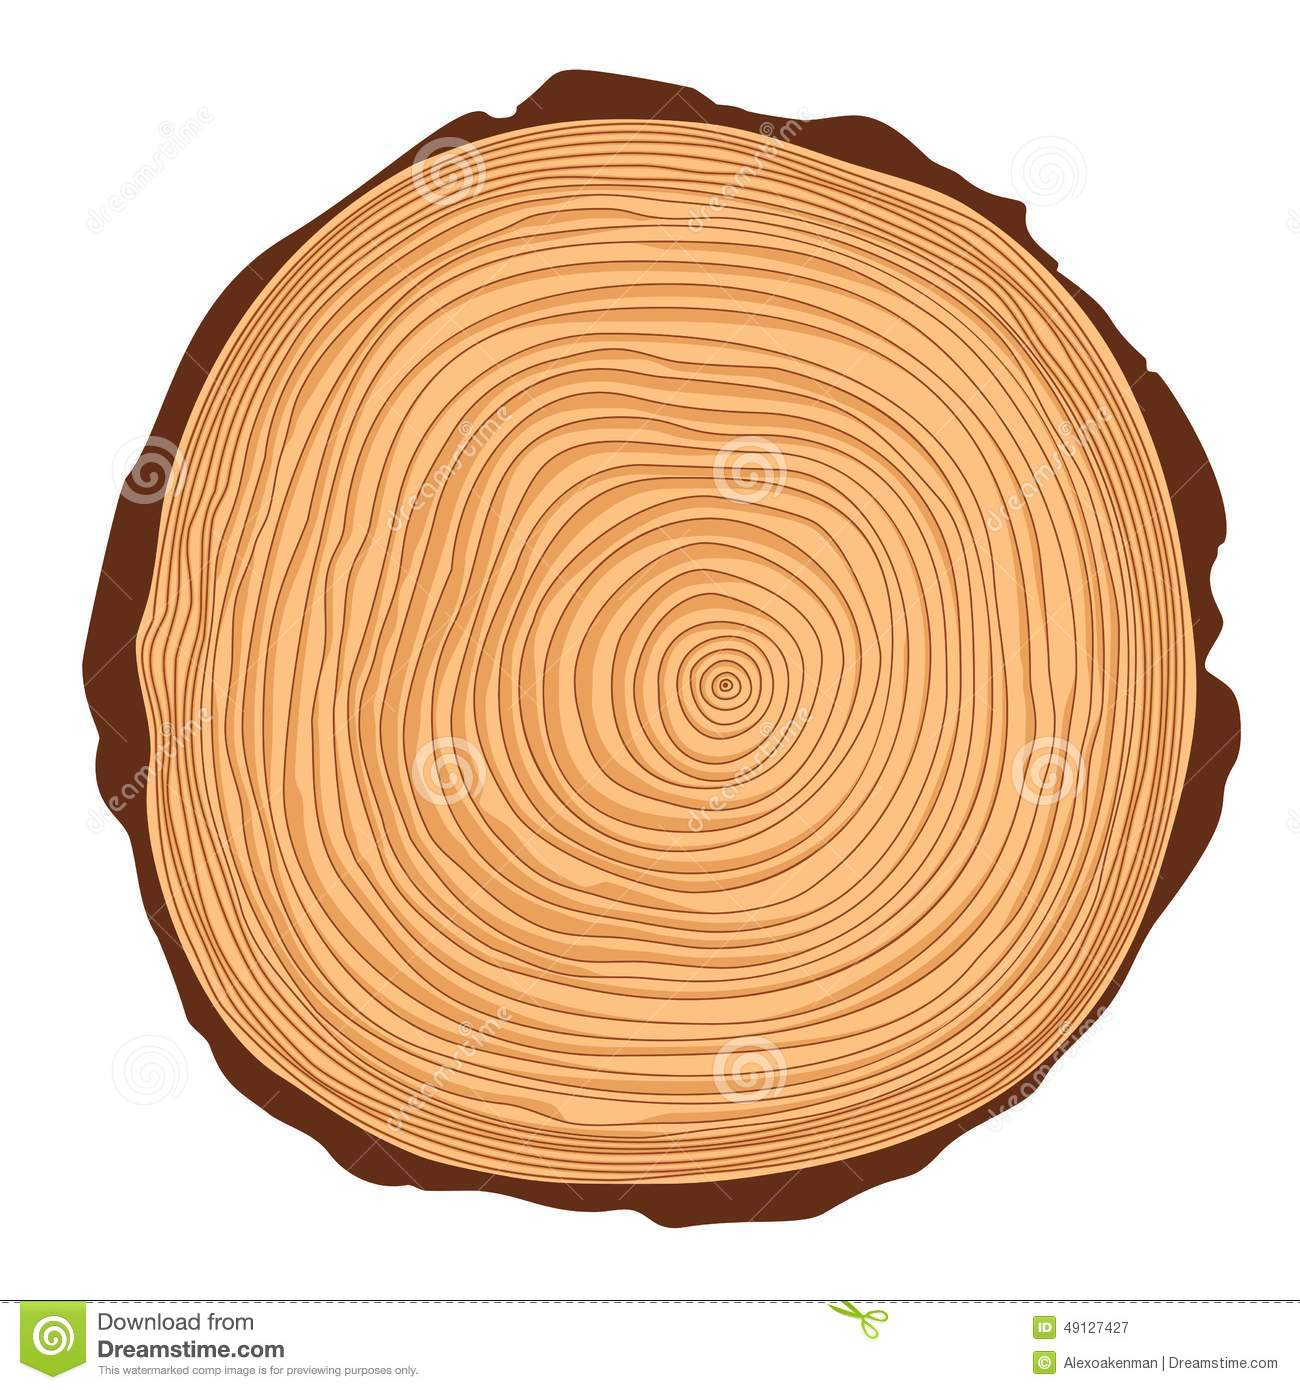 tree ring dating wiki Dendrochronology is the scientific method of dating the age of trees by the number of rings that they have grown young earth creationists are not fans of it, because dendrochronology often finds that certain trees are older than the young earth is.